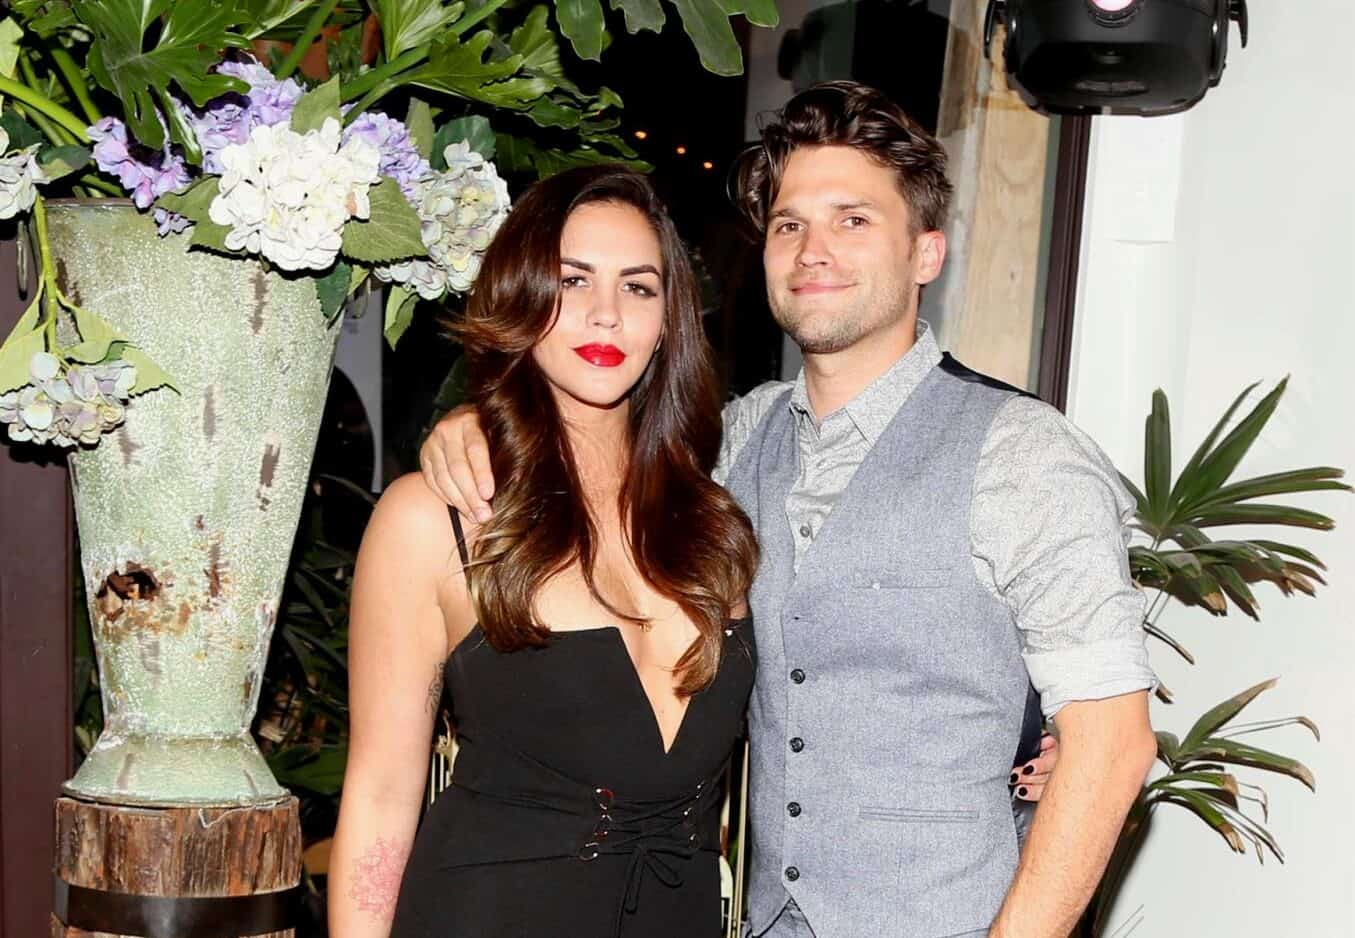 REPORT: Vanderpump Rules' Tom Schwartz and Katie Maloney Obtain Marriage License in Las Vegas After Revelation They Aren't Currently Married